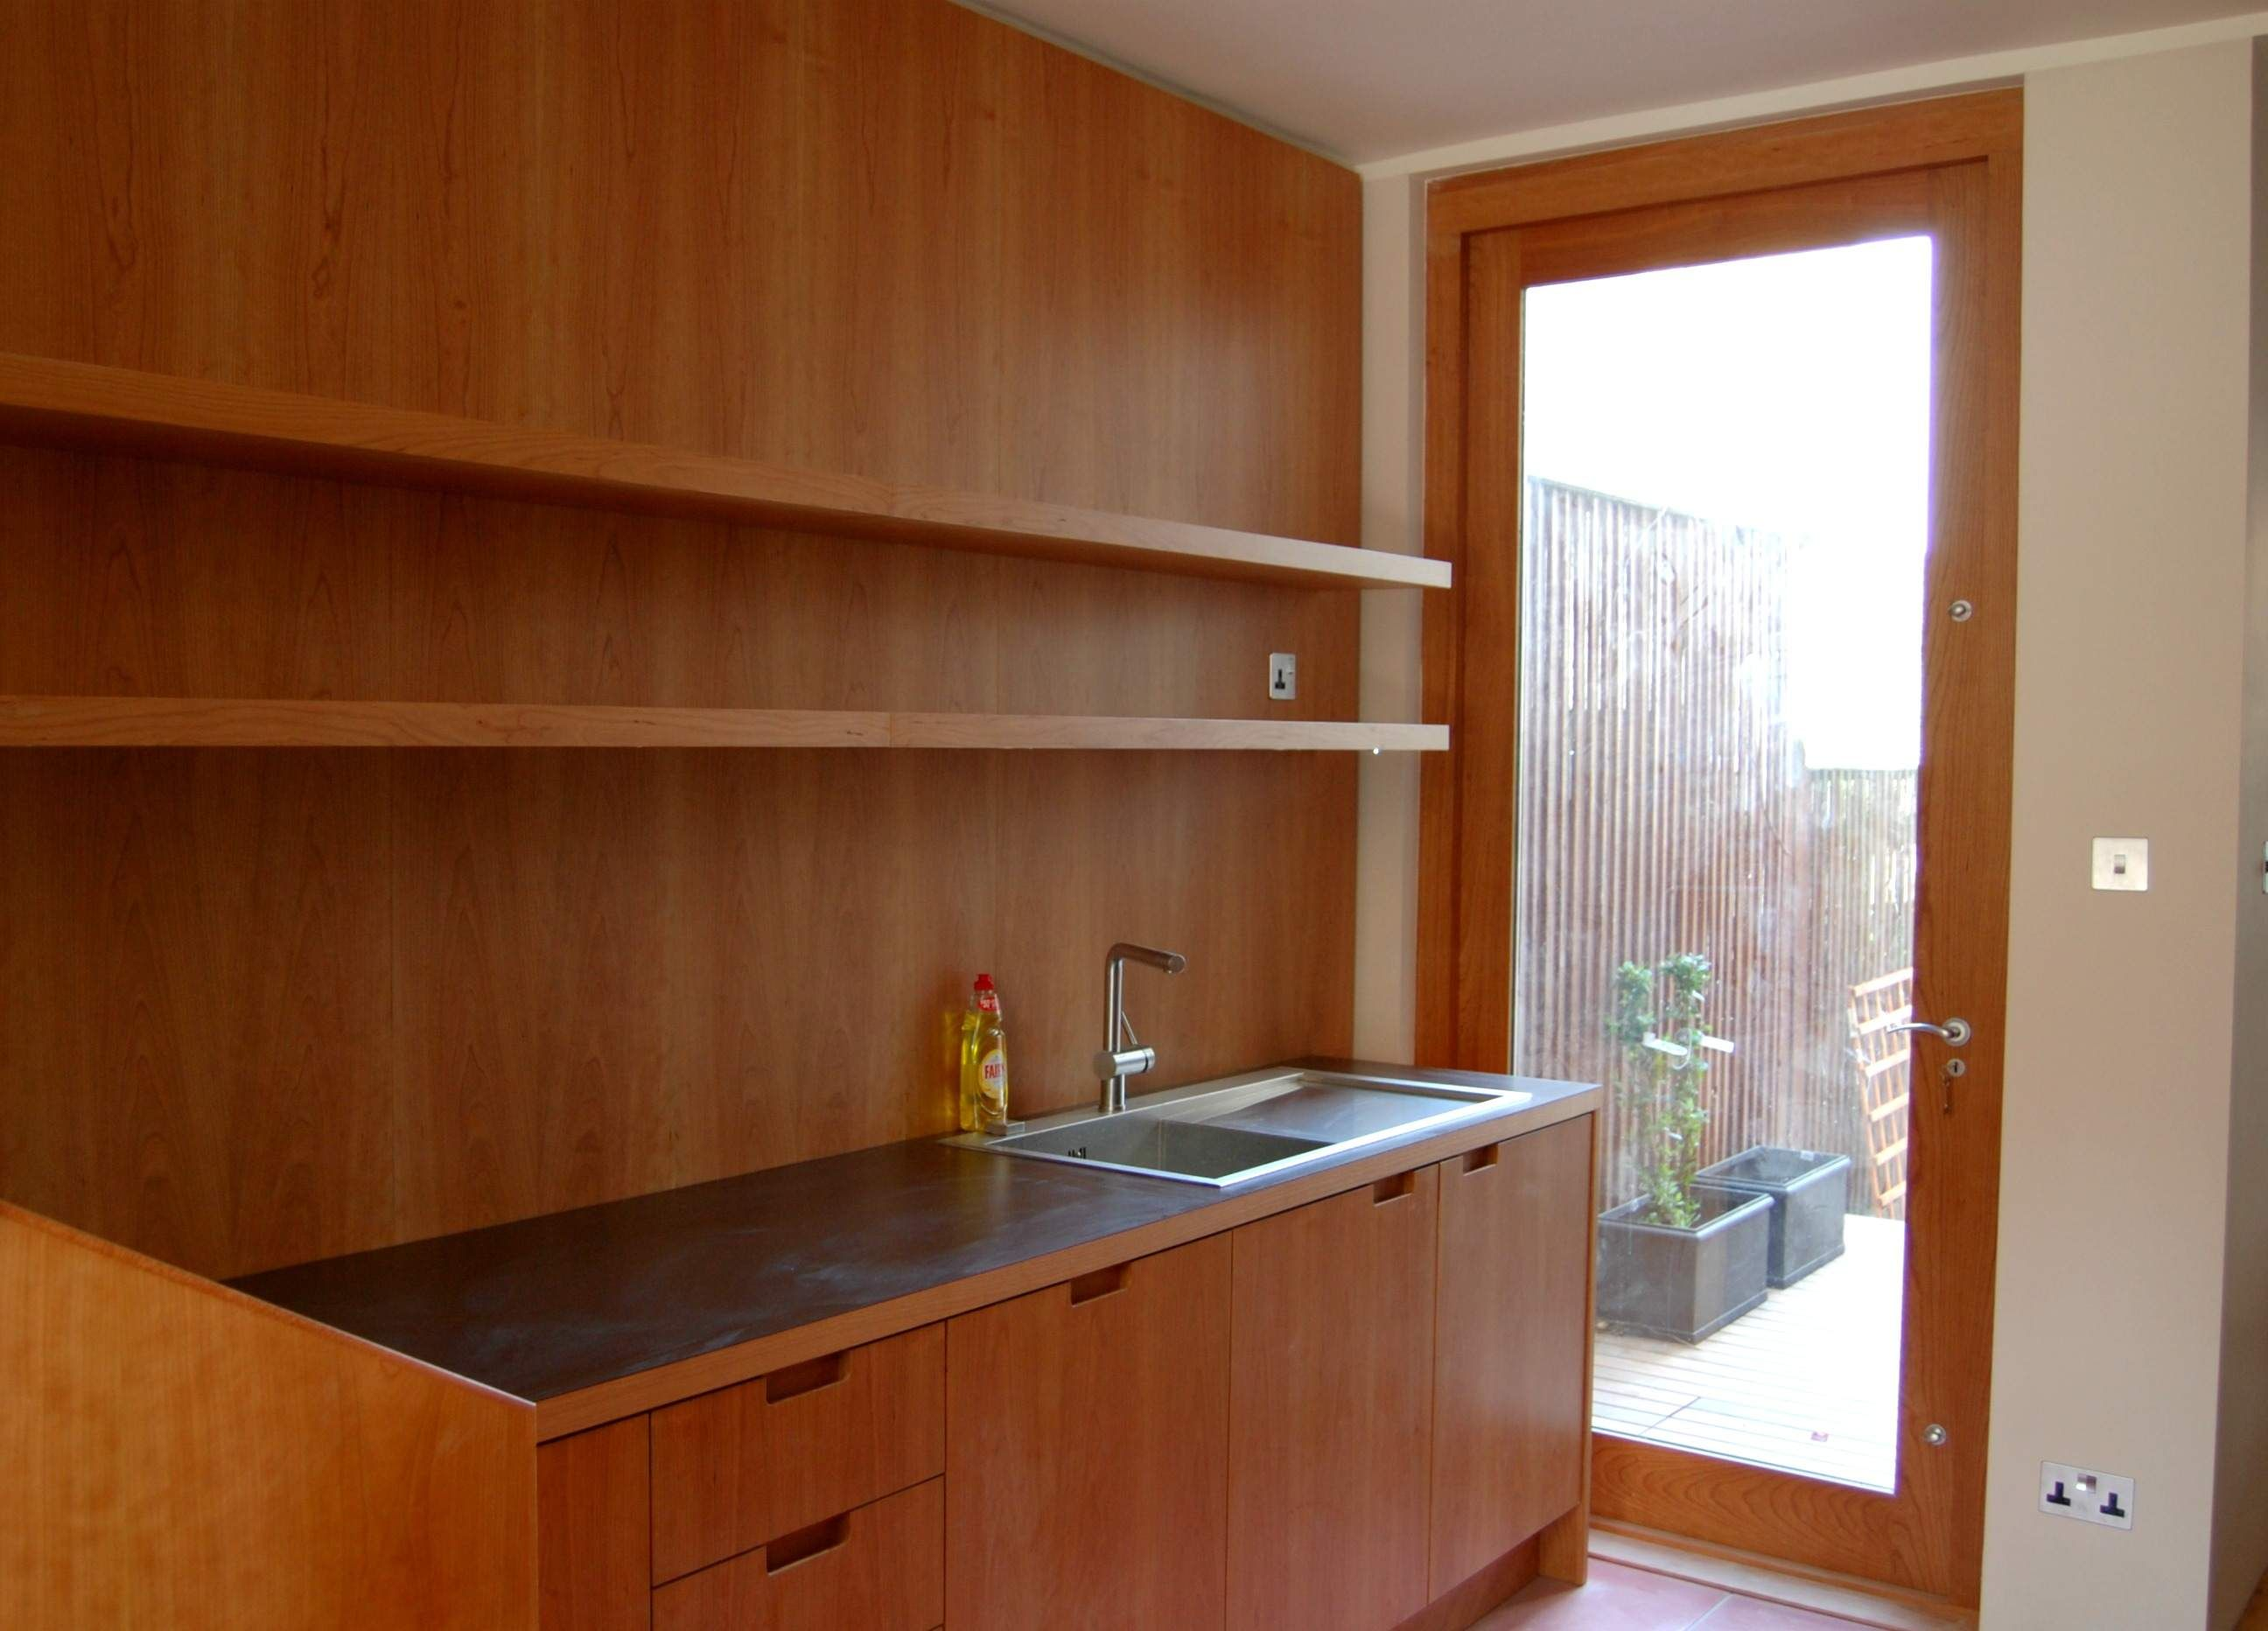 Kitchen With Cherry Wood Wall Panels And Cabinets